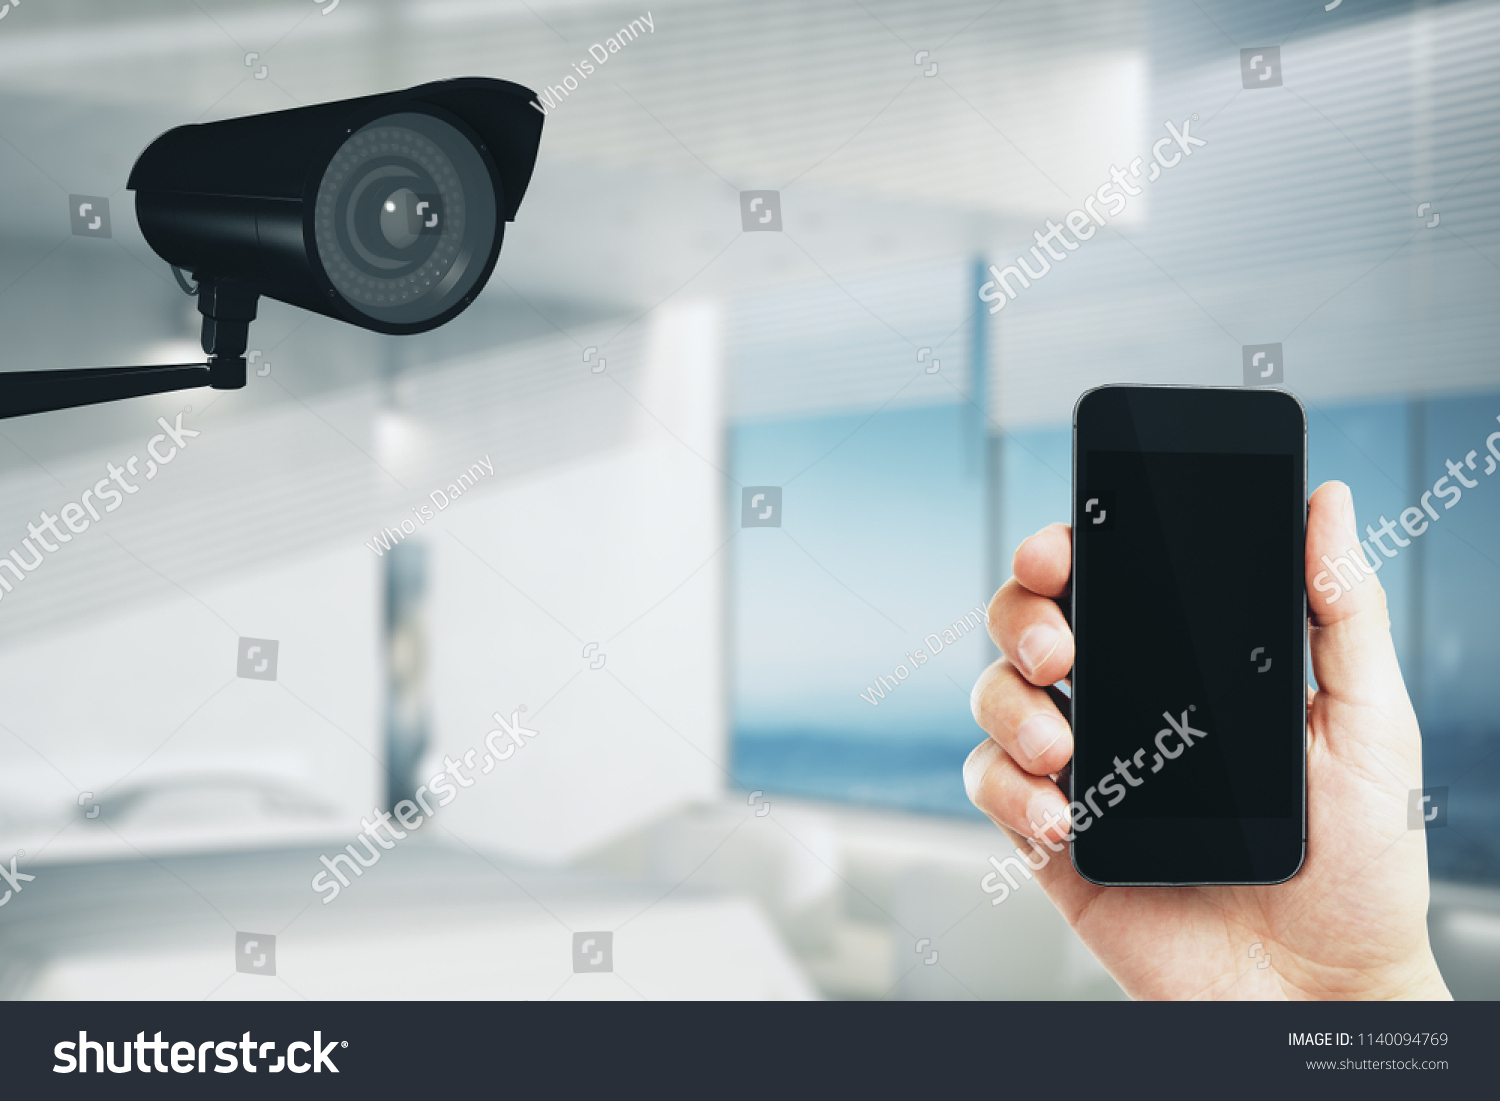 Online Security Control Concept Cctv Camera Stock Photo